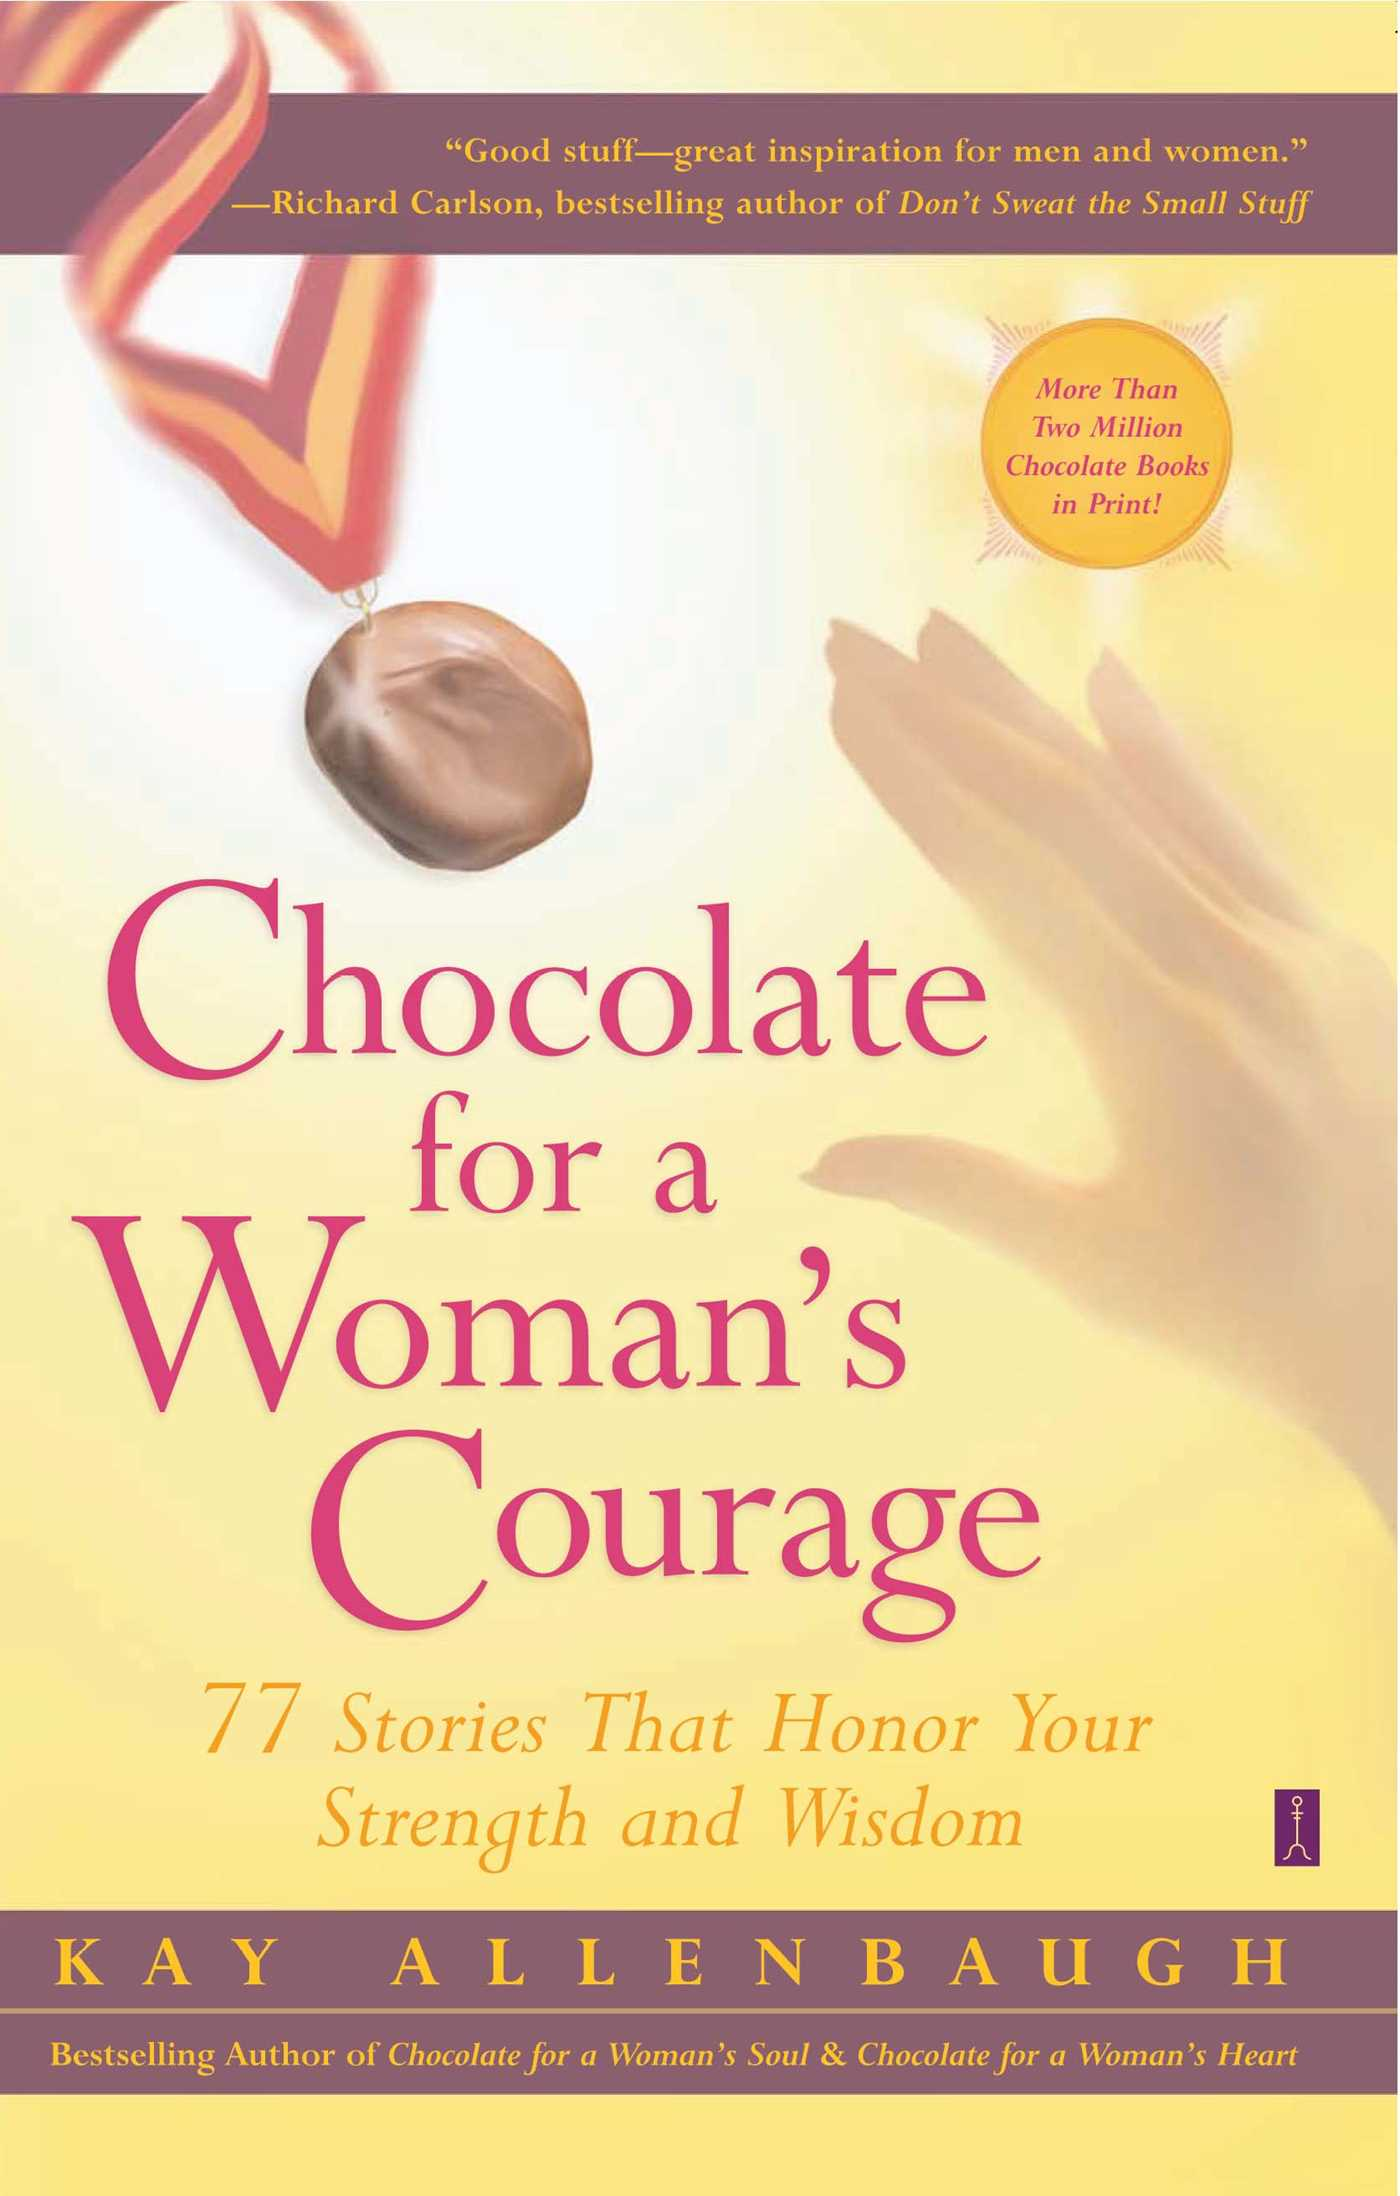 Chocolate for a womans courage 9780743236997 hr